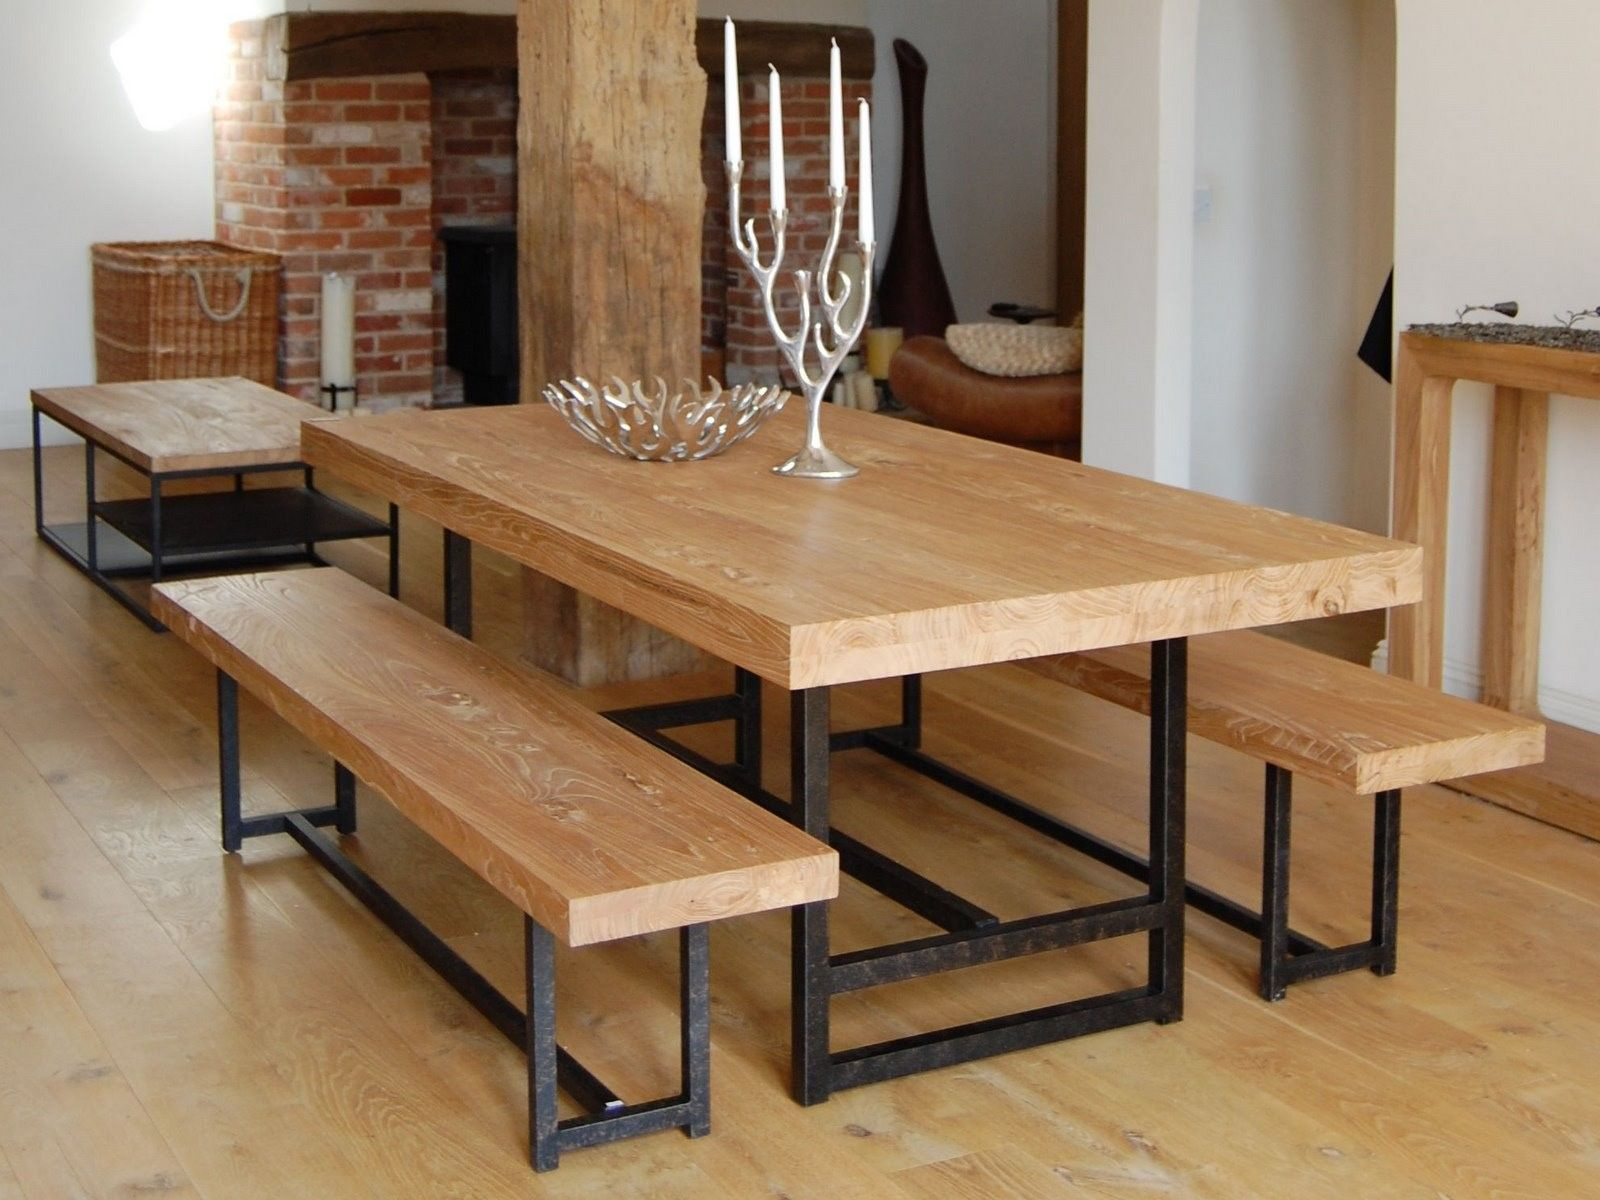 Breathtaking Rectangular Reclaimed Wood Table Black Iron Base With Benches On Rustic Floor Dining Table With Bench Butcher Block Dining Table Wood Dining Table